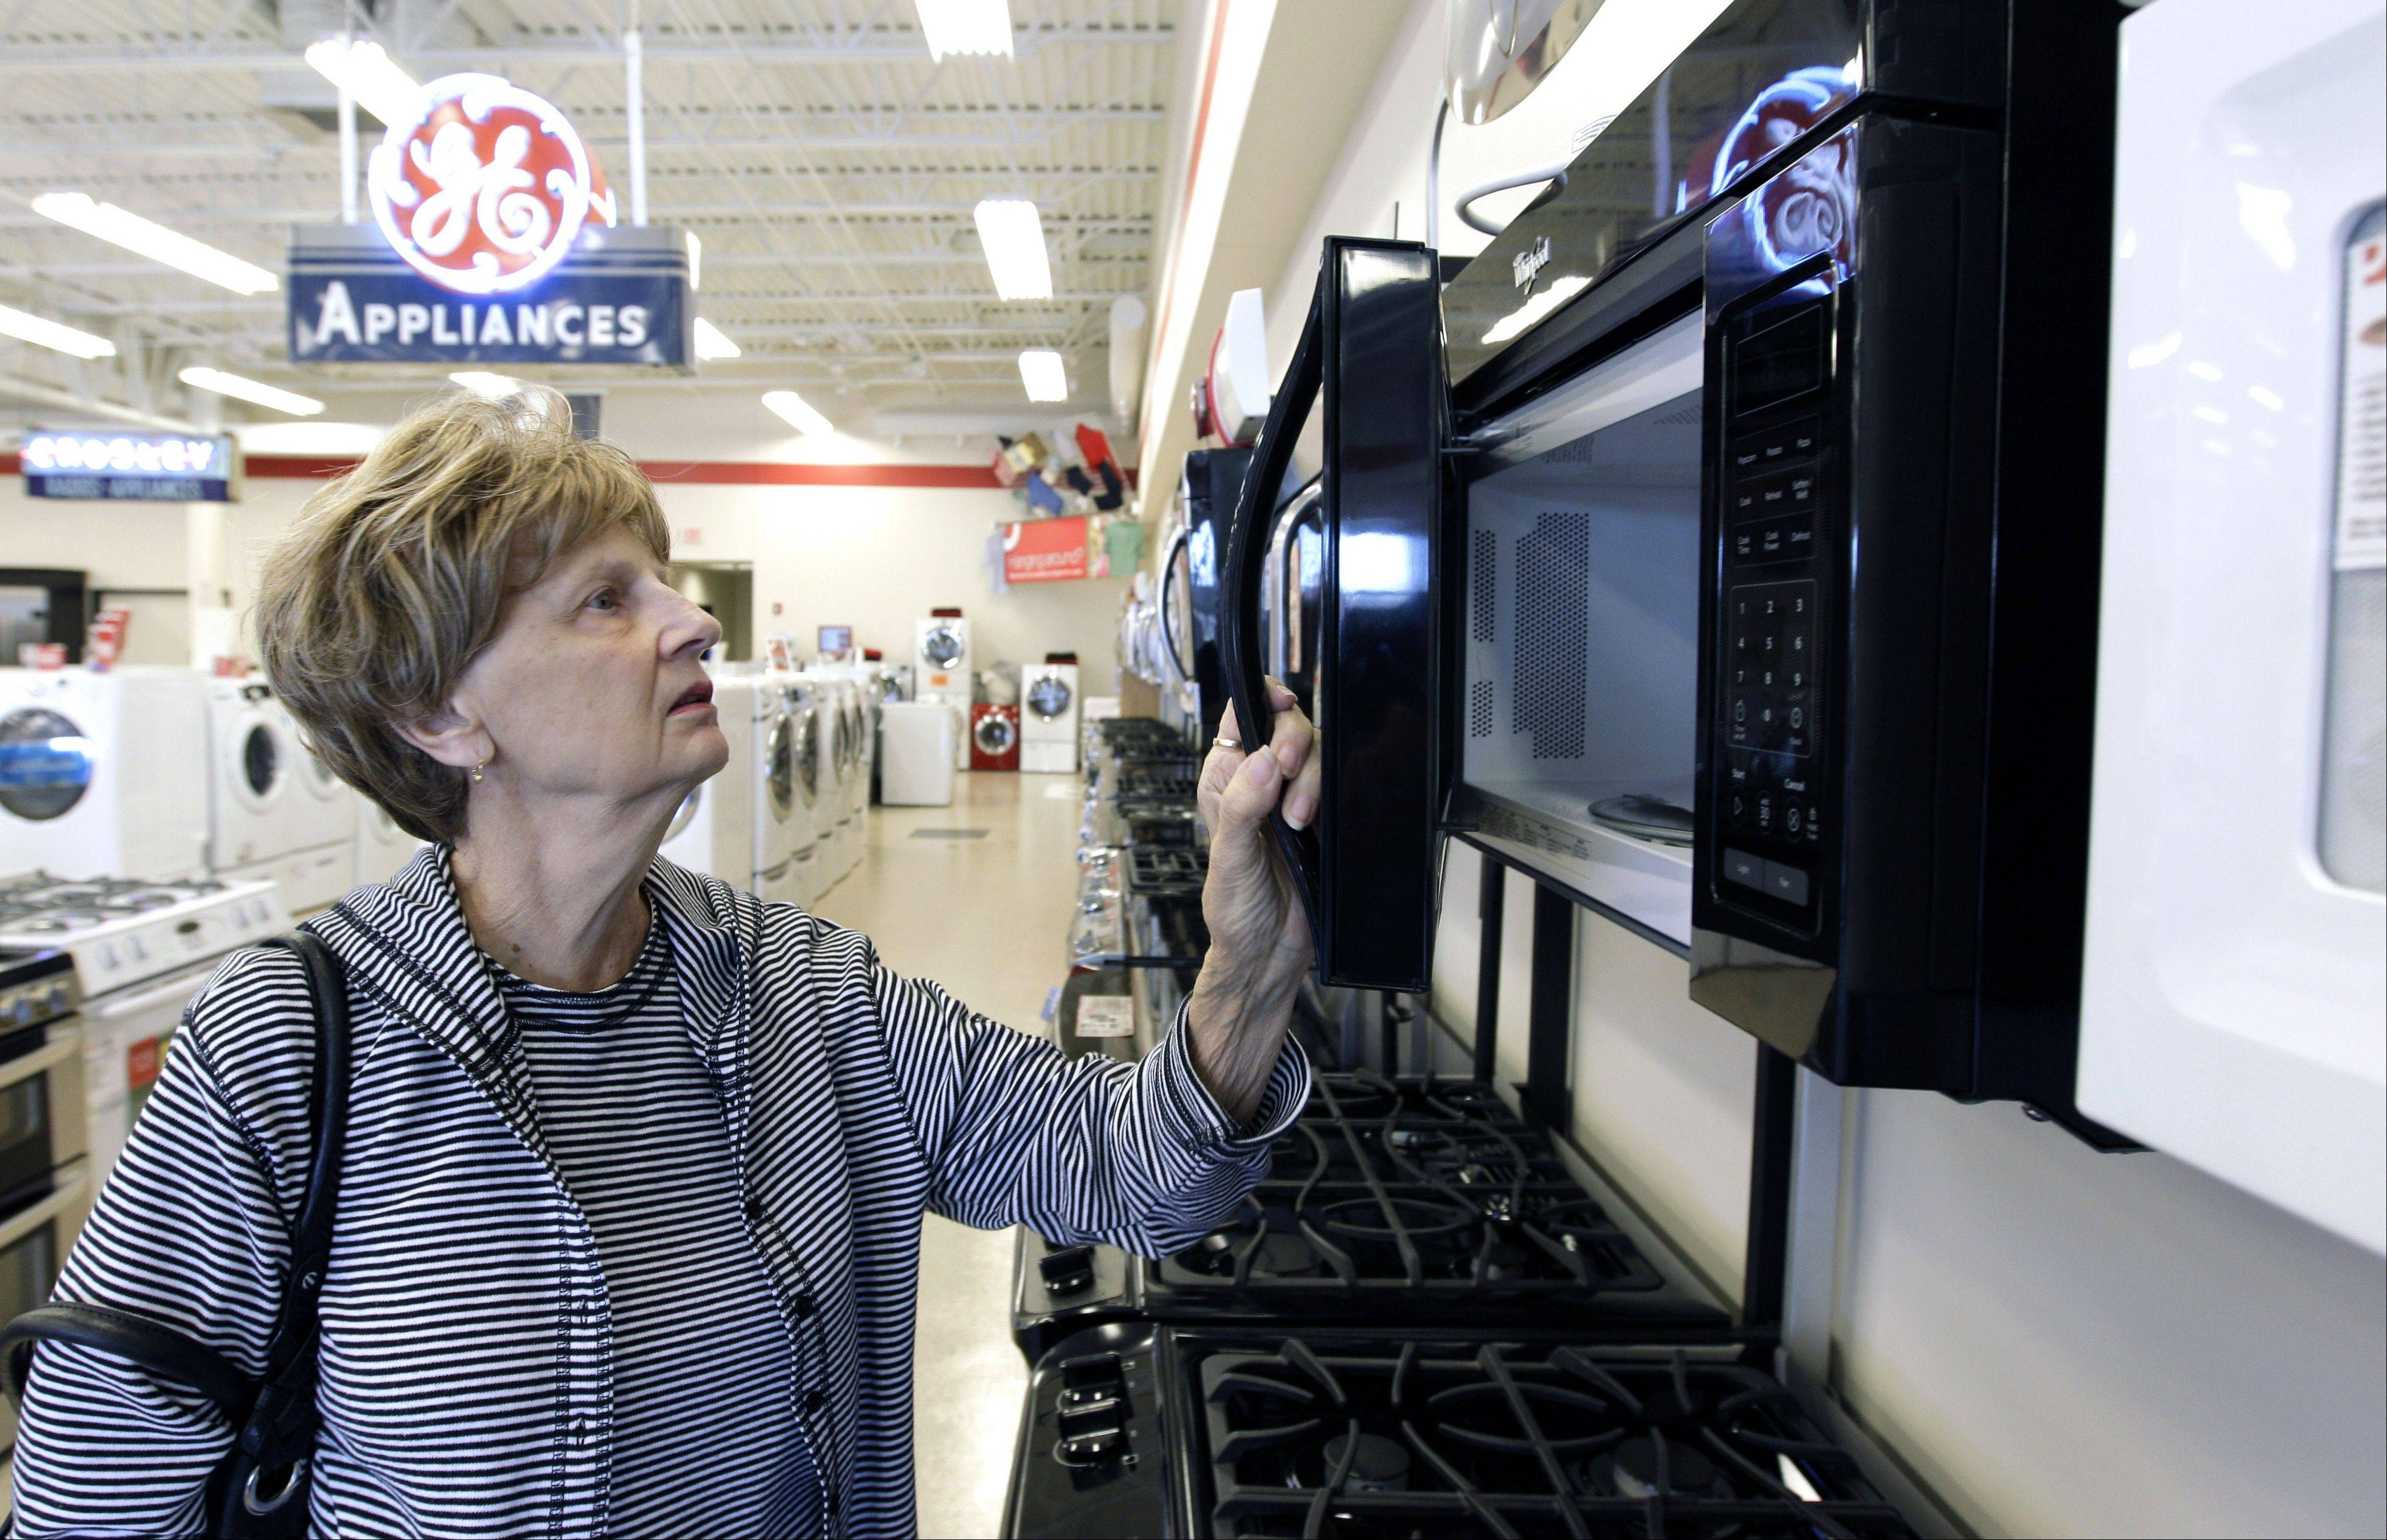 Mary Ann Rotolo shops for a microwave oven at Orville's Home Appliances store in Amherst, N.Y. U.S. companies in October increased their orders of machinery and equipment that signal investment plans by the largest amount in five months, a hopeful sign for future economic growth.